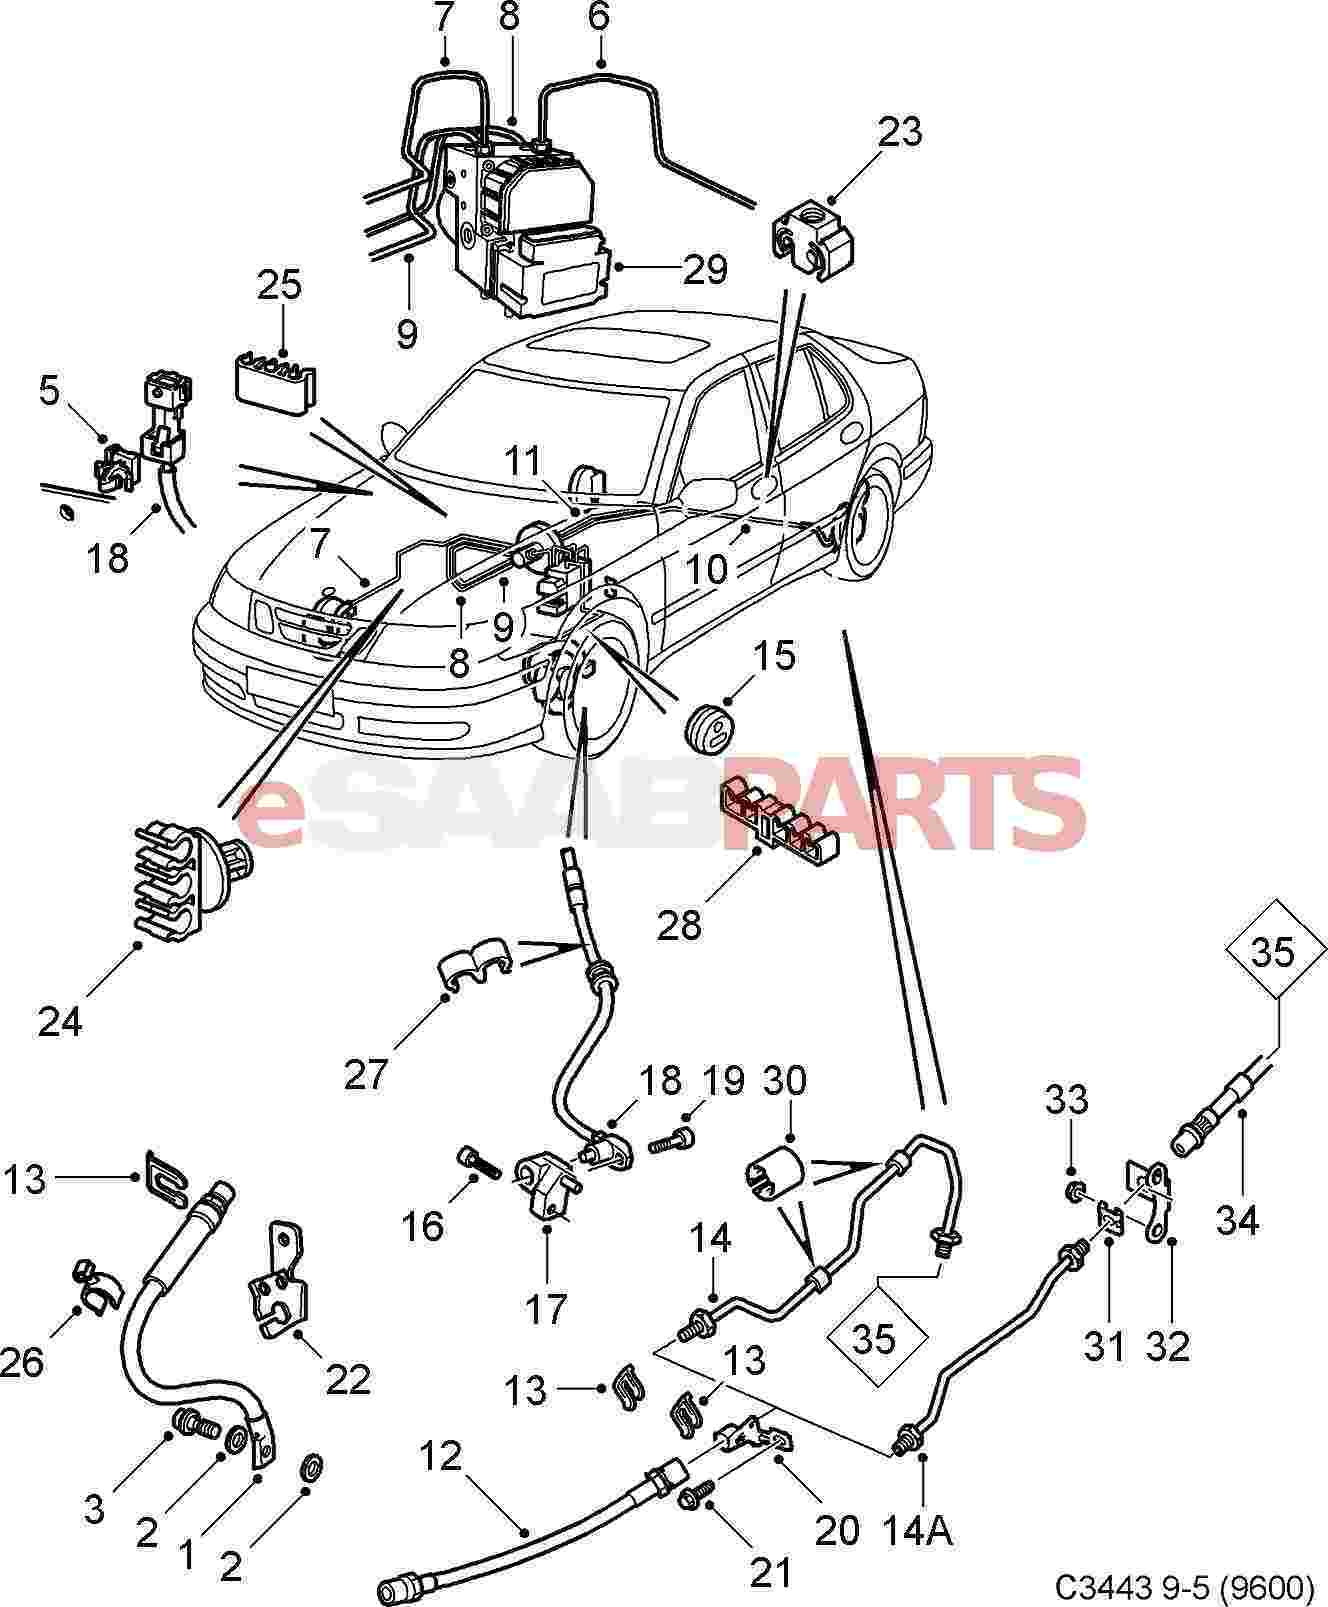 eSaabParts com - Saab 9-5 (9600) > Brakes Parts > Brake Lines